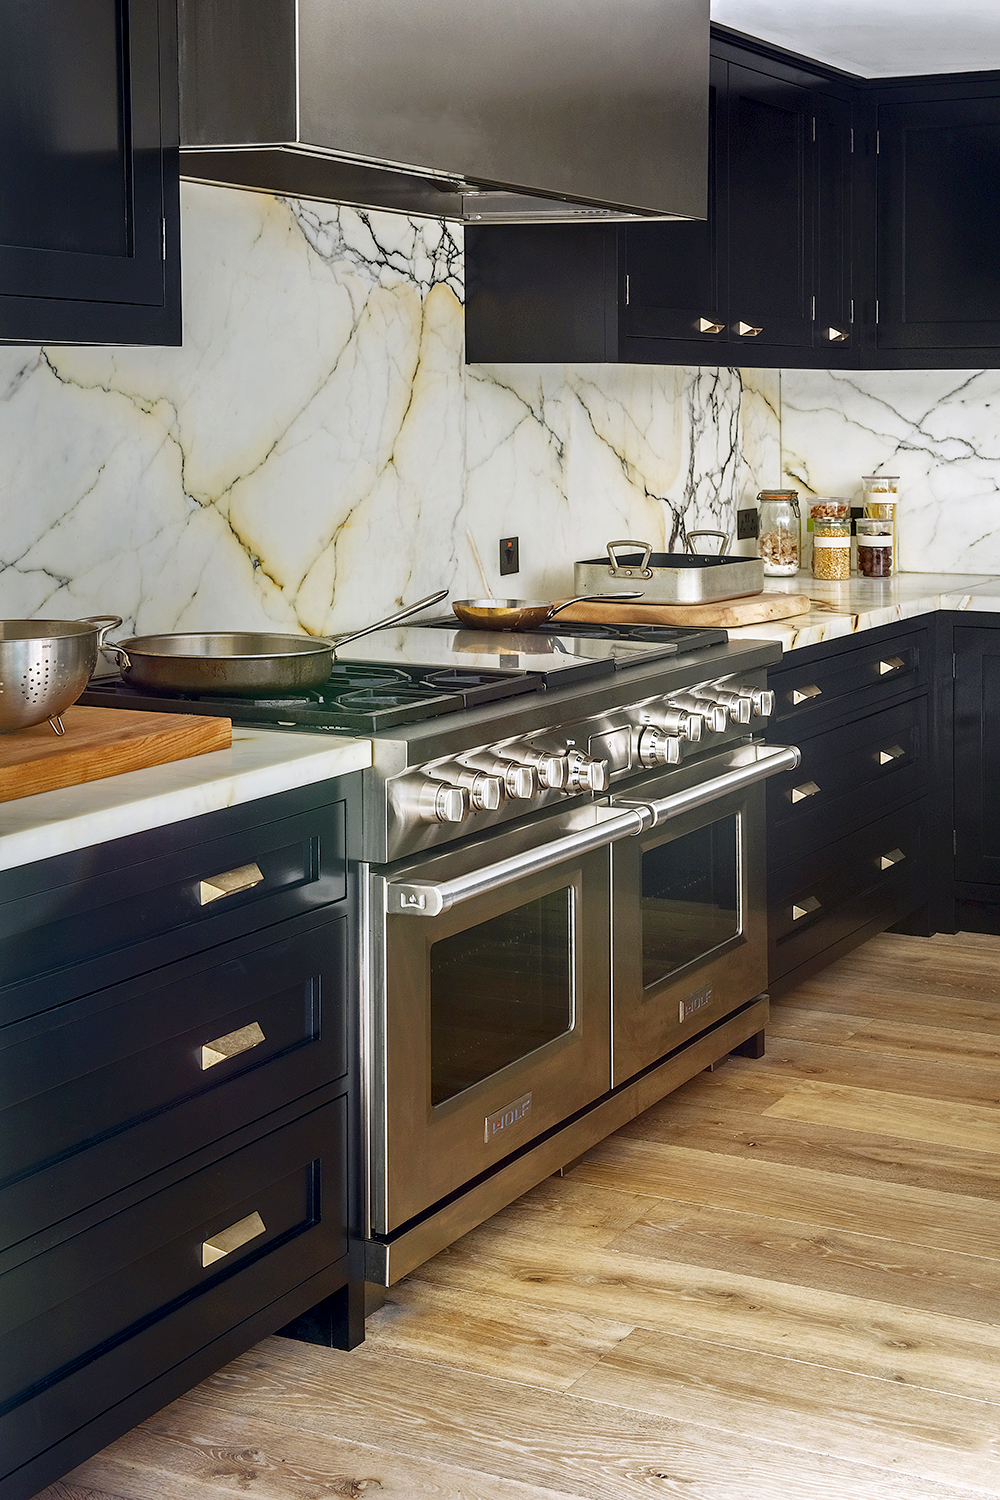 Wolf range cooker built in to marble veined worktops and splash backs with cabinets in MyLands Sinner with Westin Hood extractor and aged brass hardware.